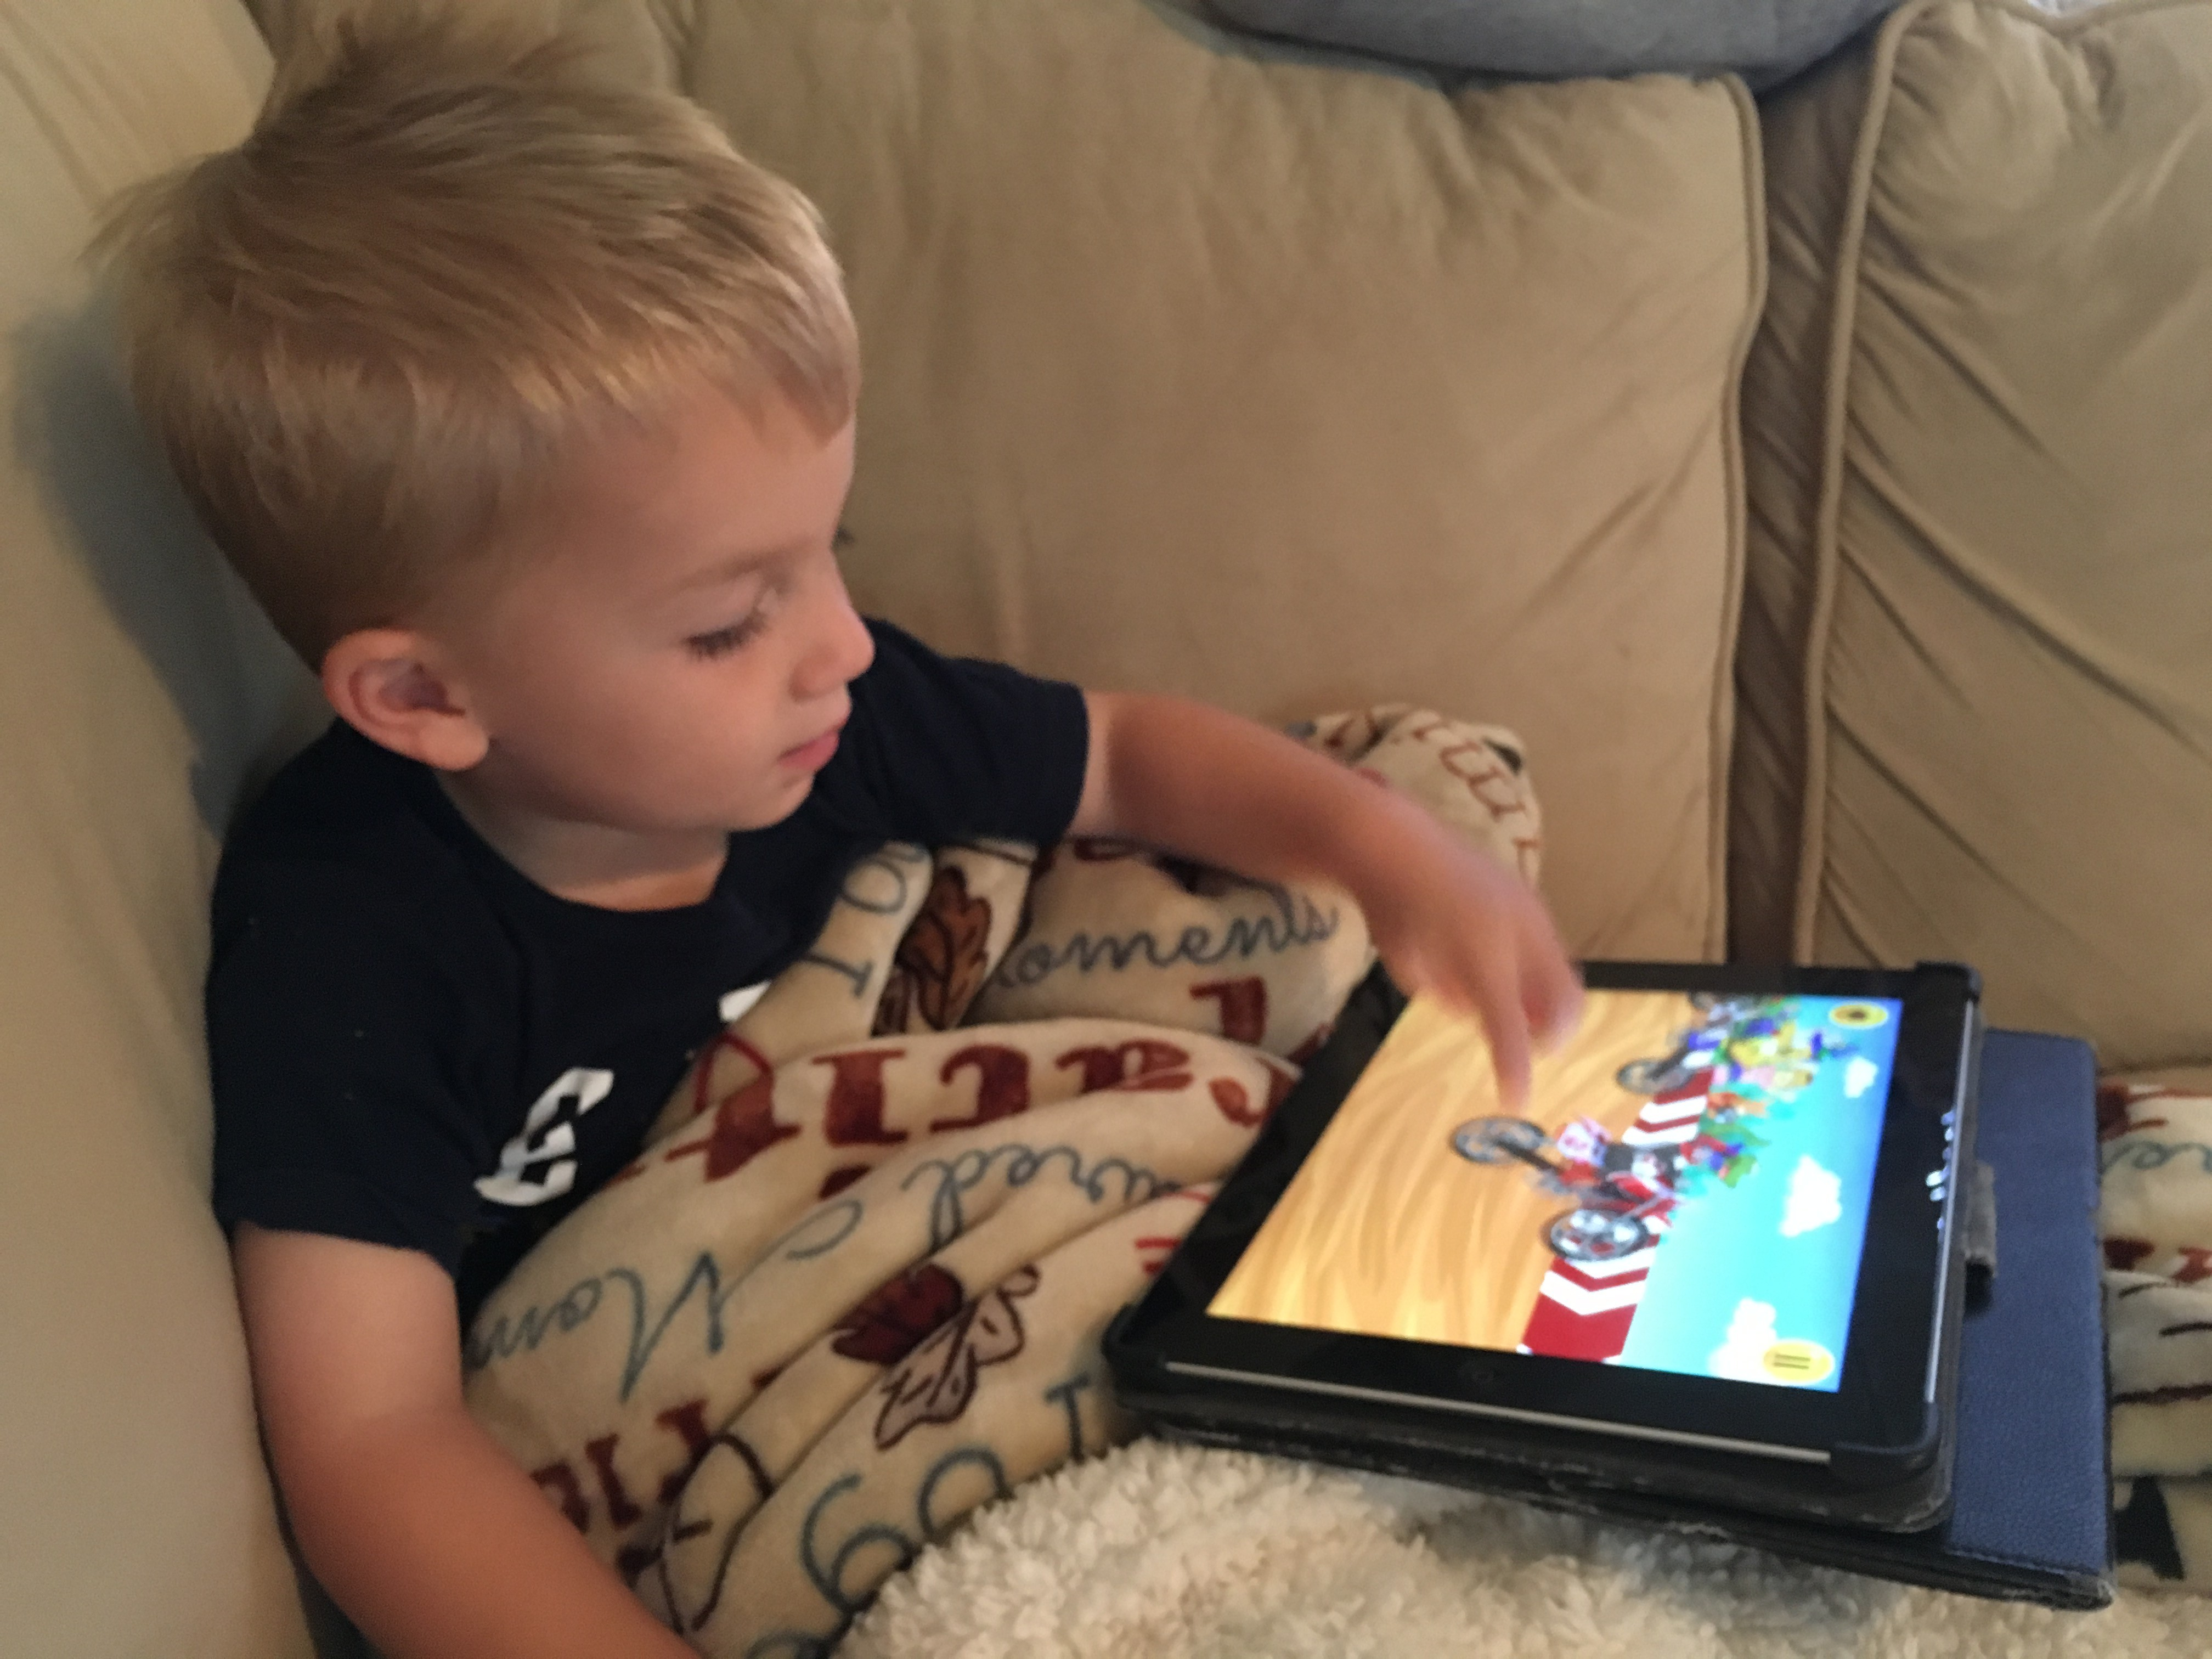 Ipad Games For Toddlers >> 6 Tips And A Great App For Introducing The Ipad To Your